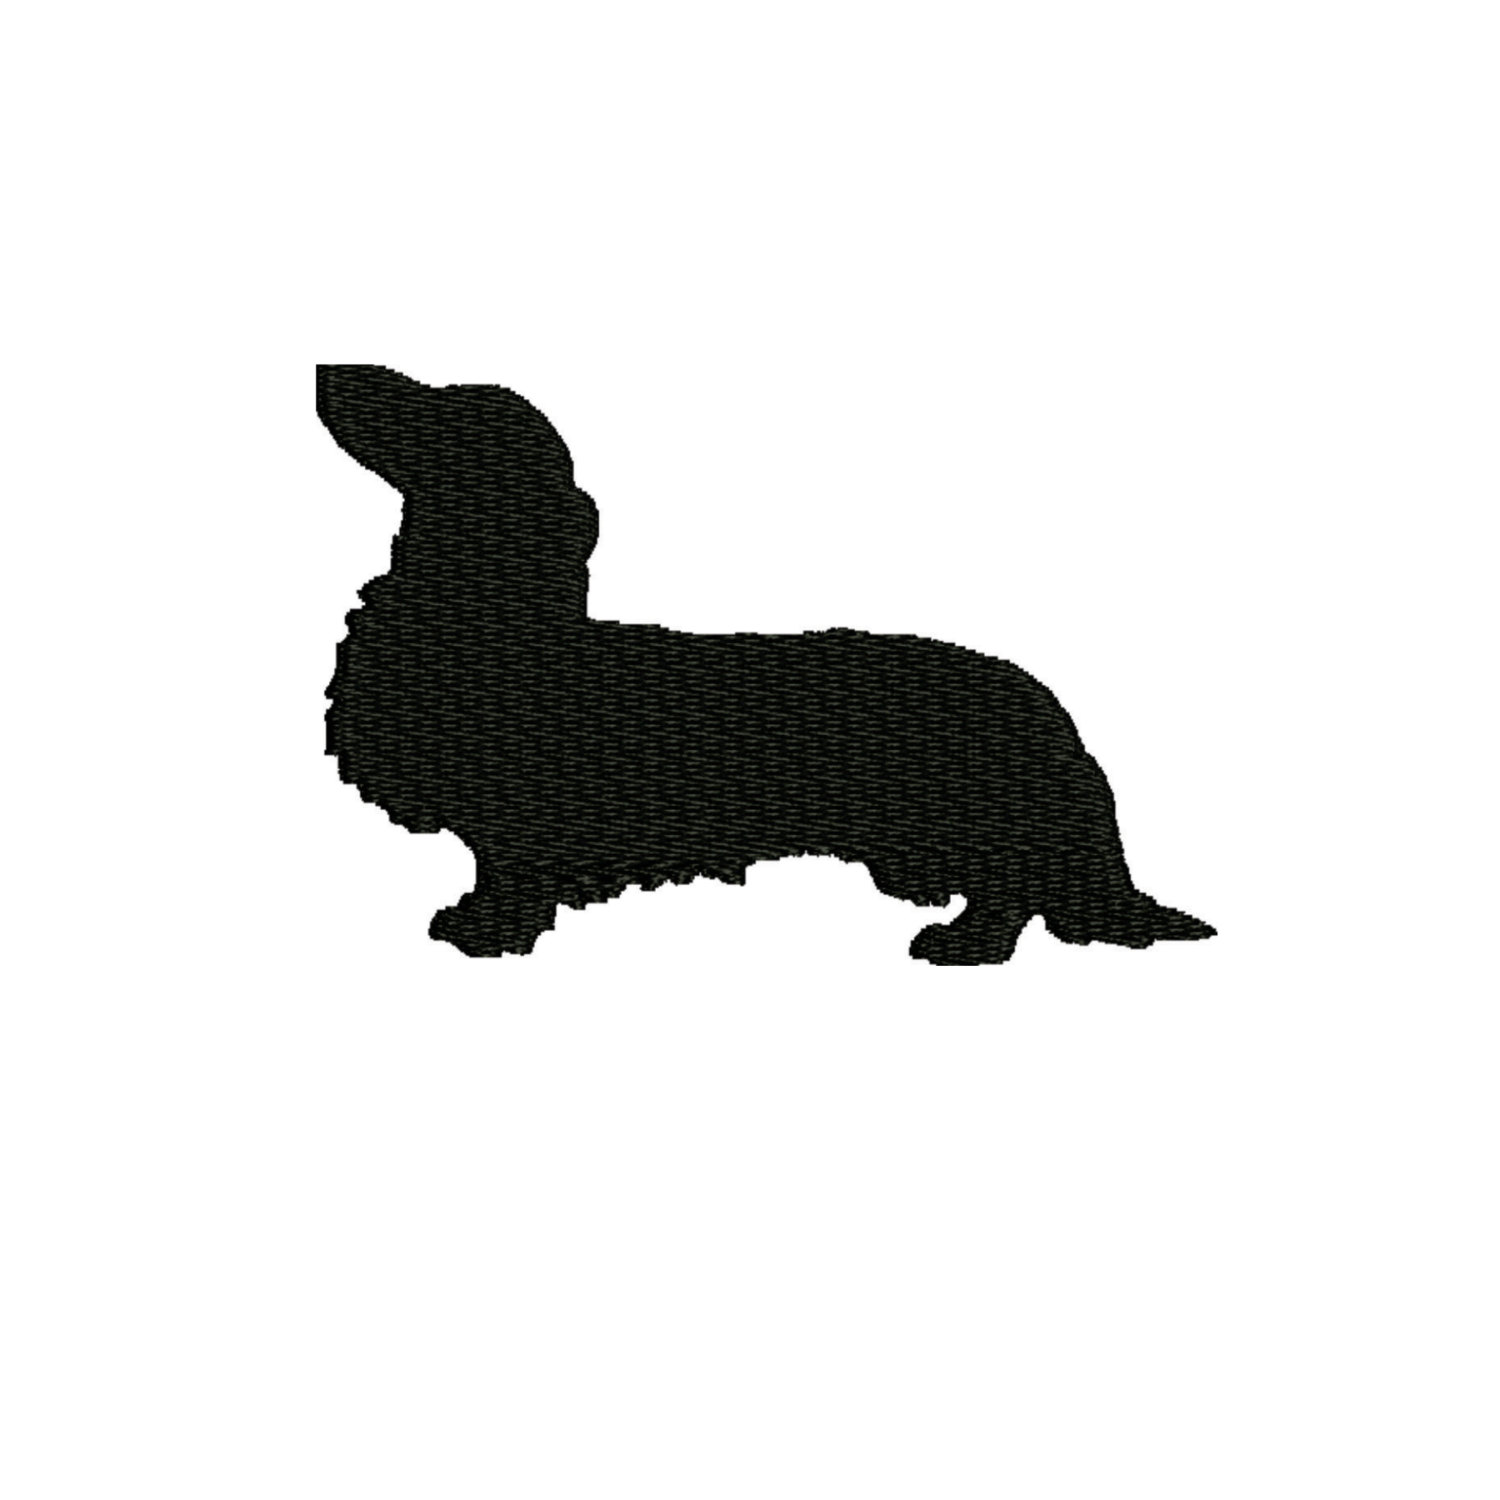 1500x1500 Dog Embroidery Design , Dachshund Silhouette 4 X4 And 5 X 7